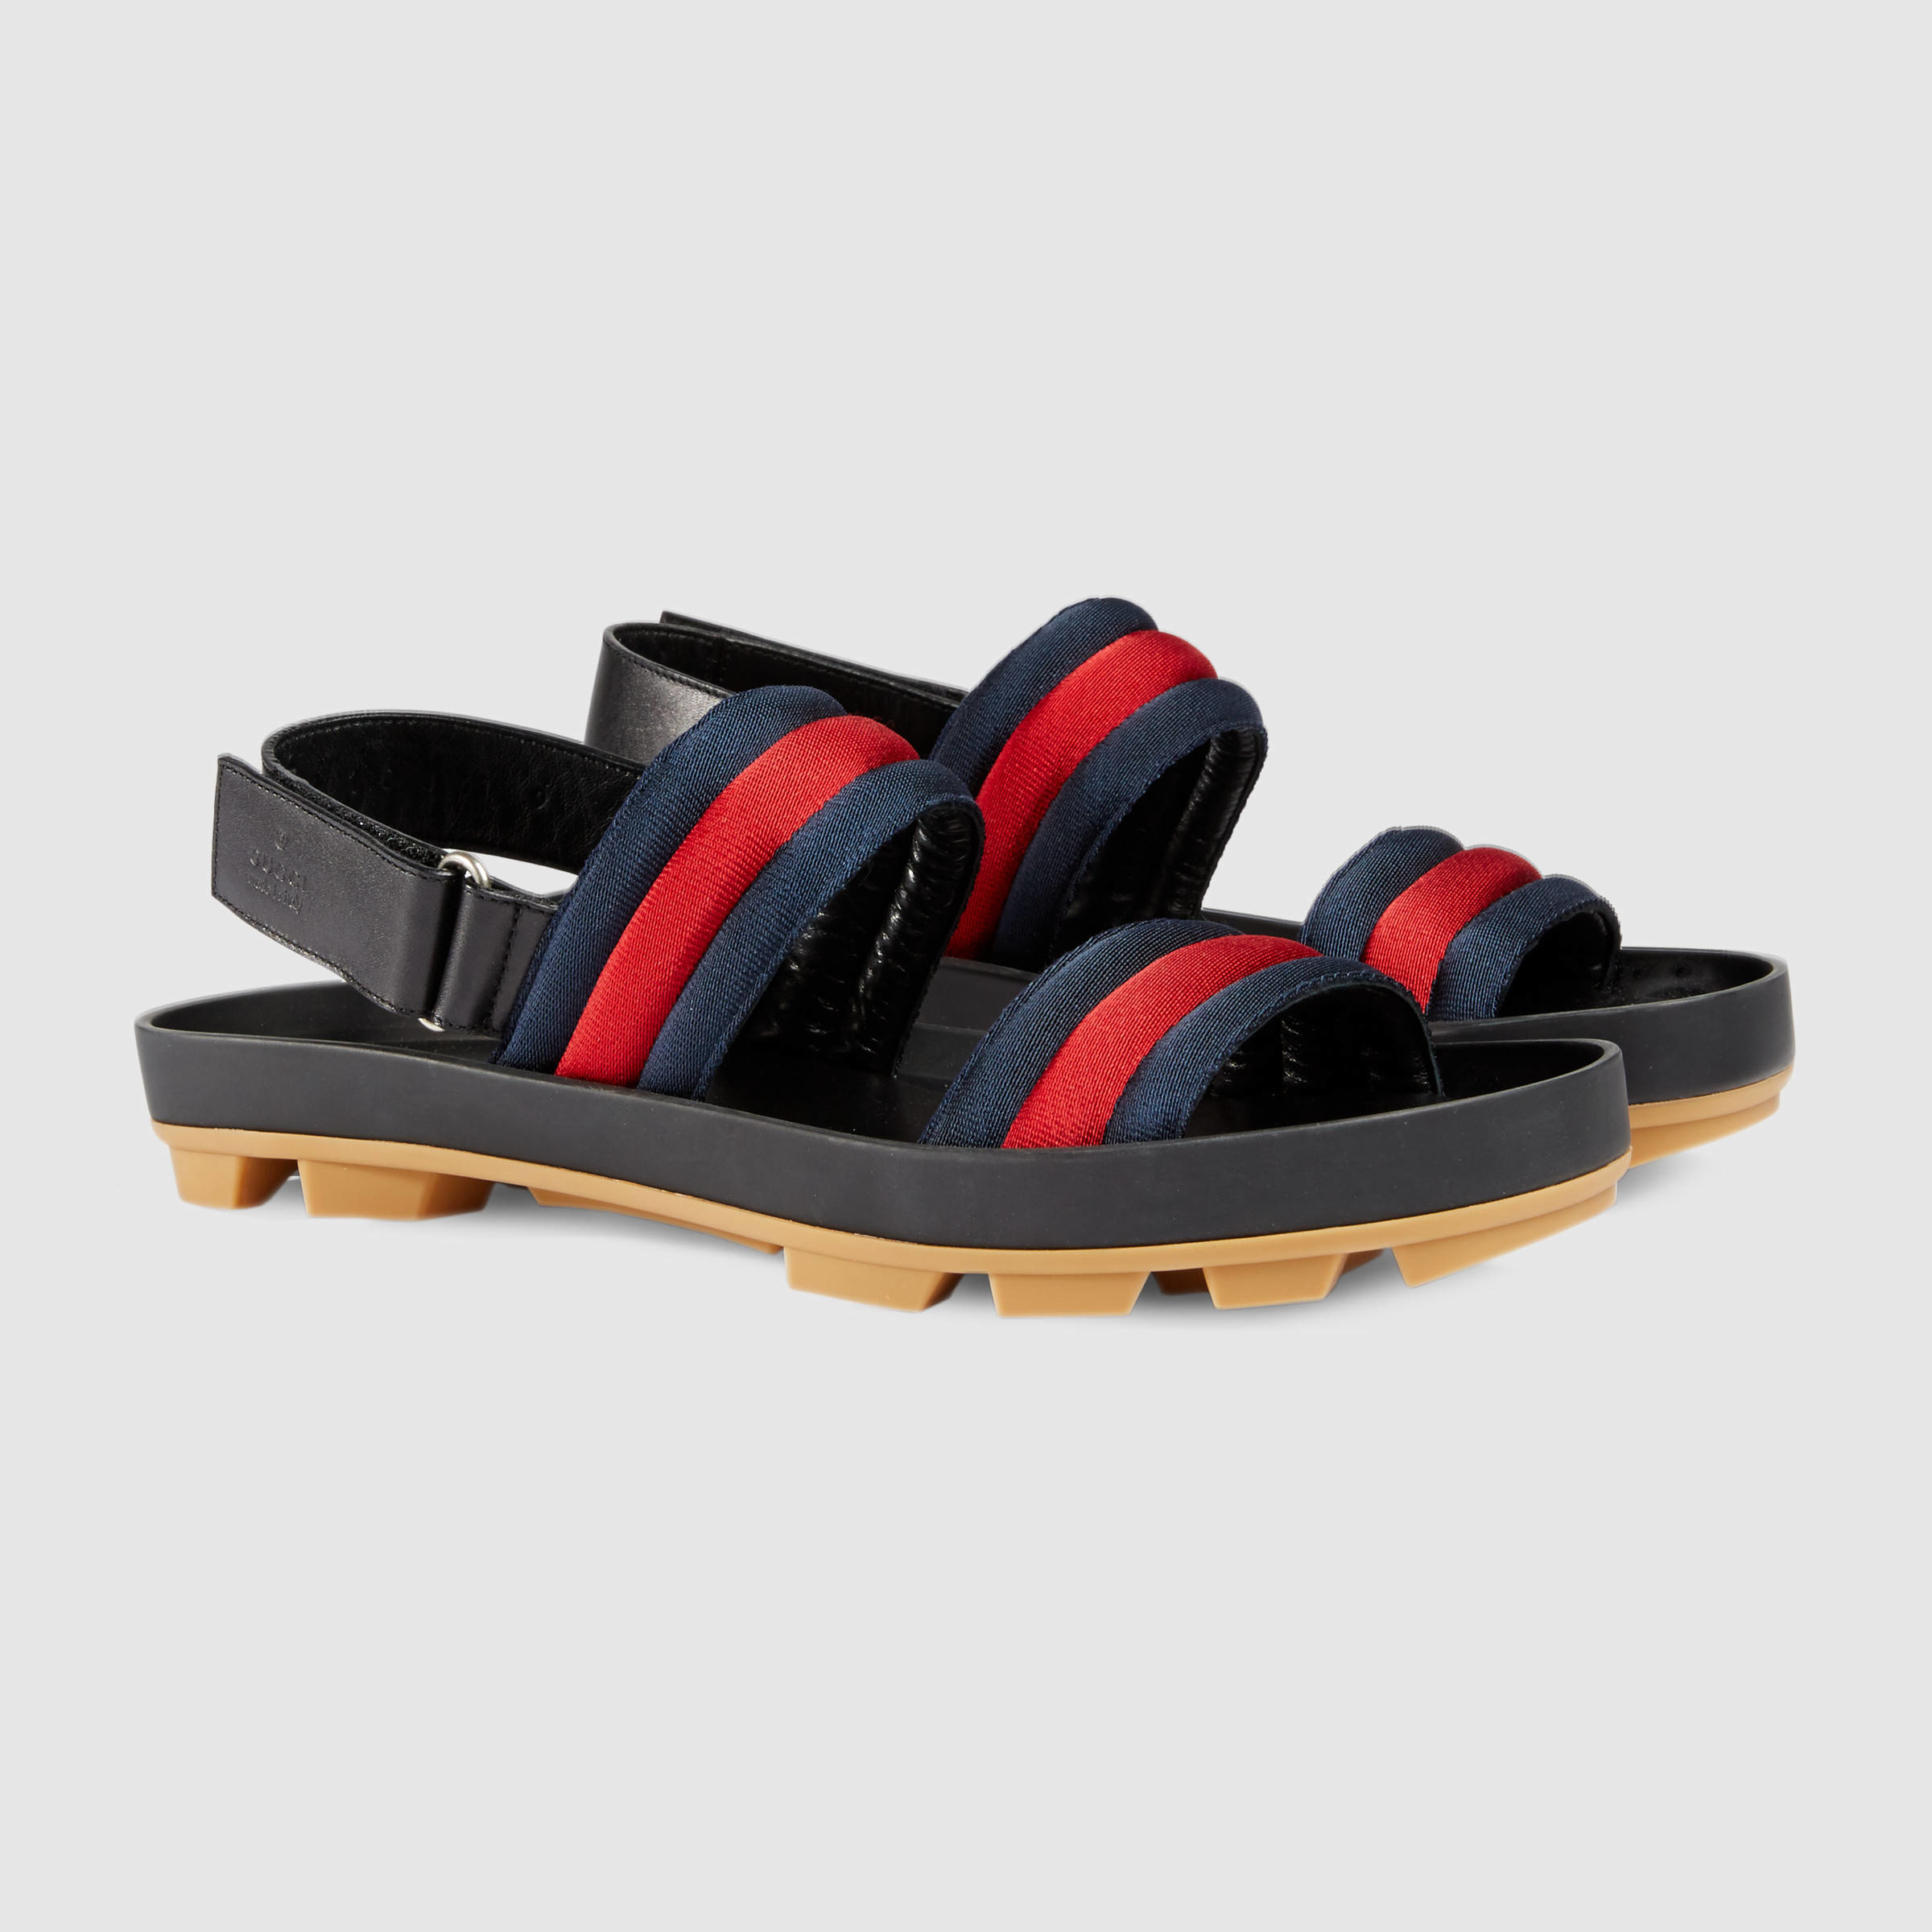 a8dac888e Lyst - Gucci Leather And Web Sandal for Men